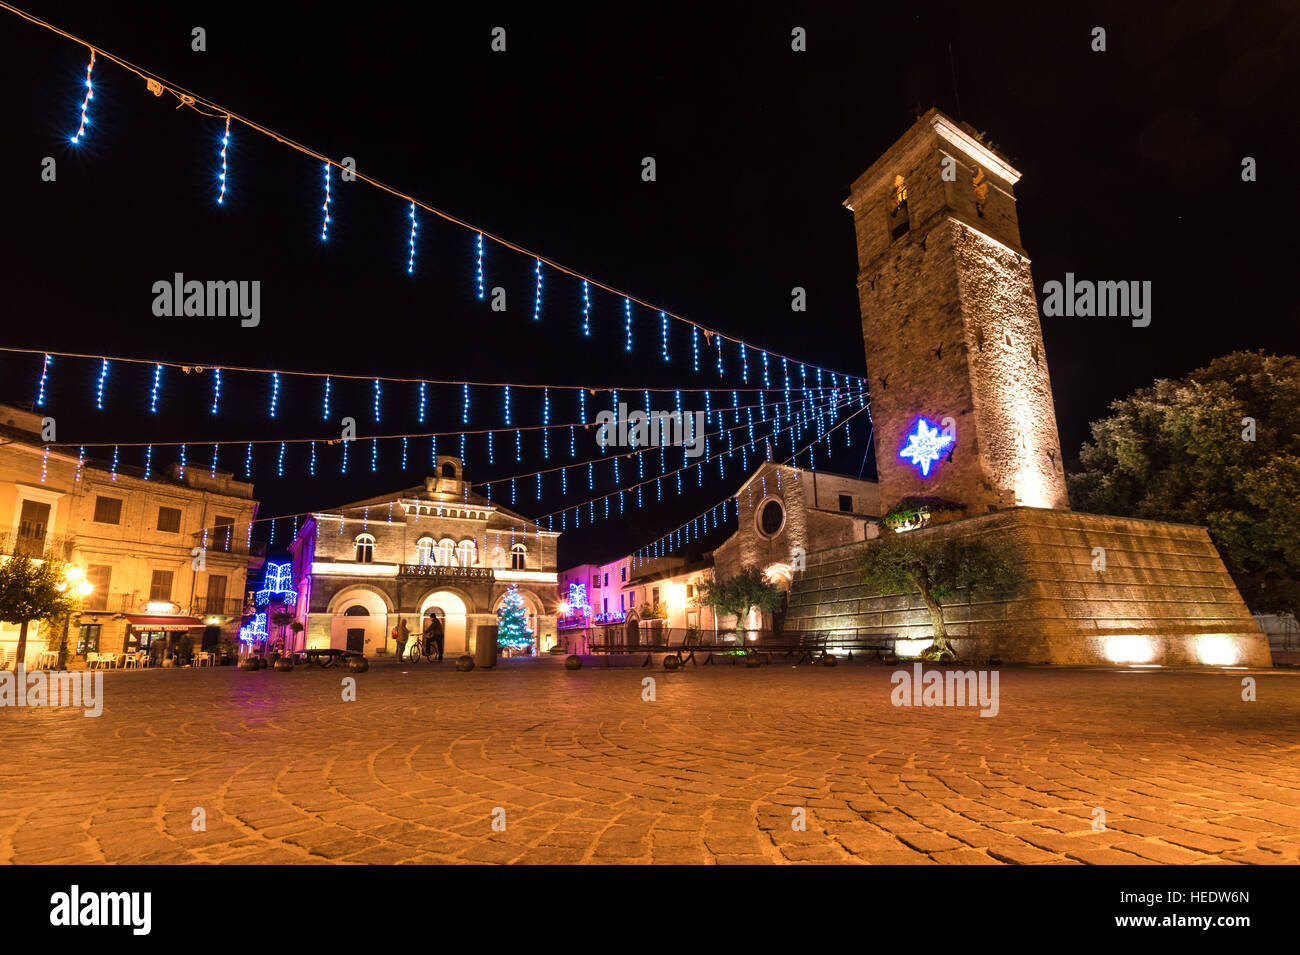 rocca san giovanni abruzzo italy christmas holidays stock image - How Does Italy Celebrate Christmas